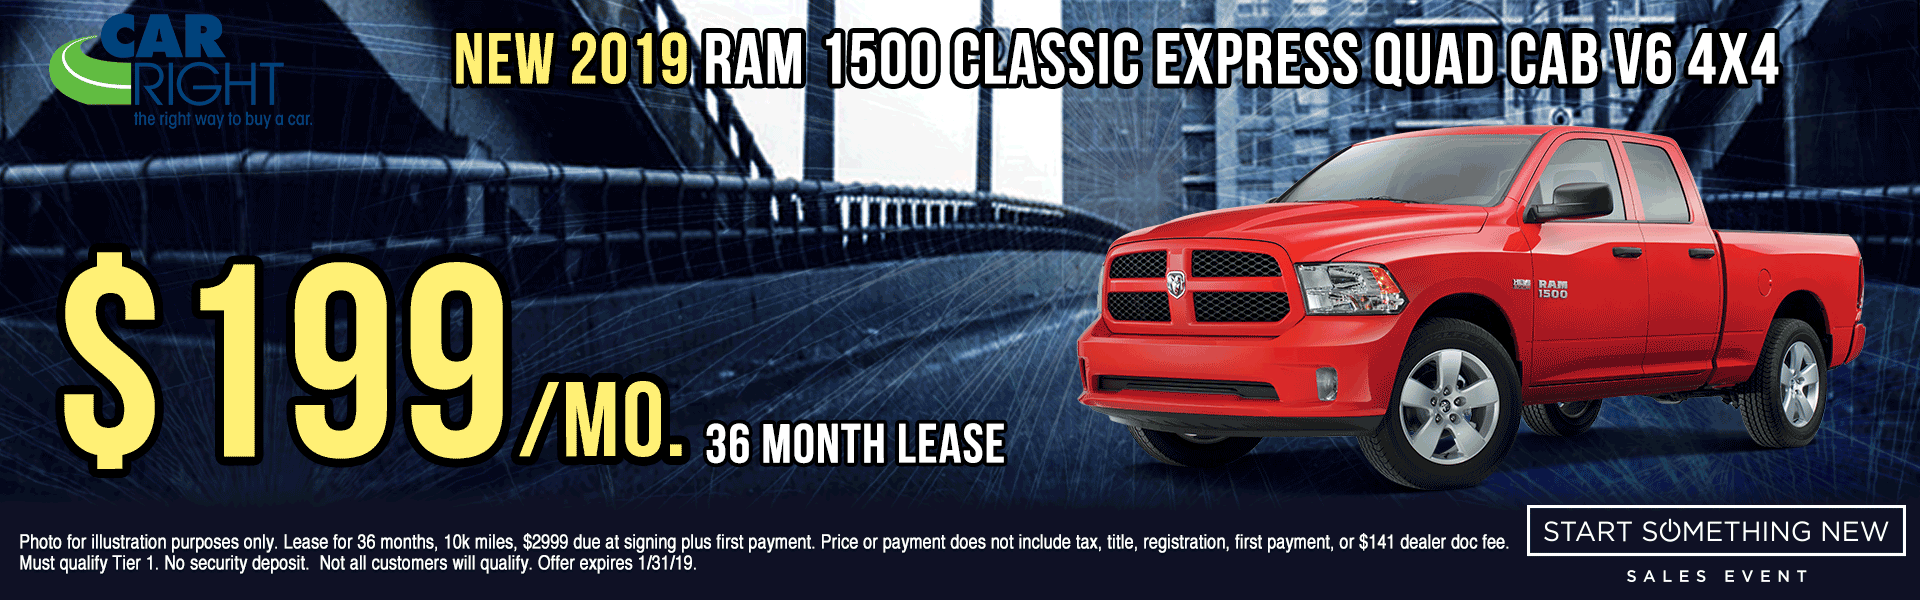 B3173---2019-RAM-1500-CLASSIC-EXPRESS-QUAD-CAB-V6 chrysler specials dodge specials jeep specials ram specials lease specials retail specials incentives shop now start something new sales event new vehicle specials carright specials